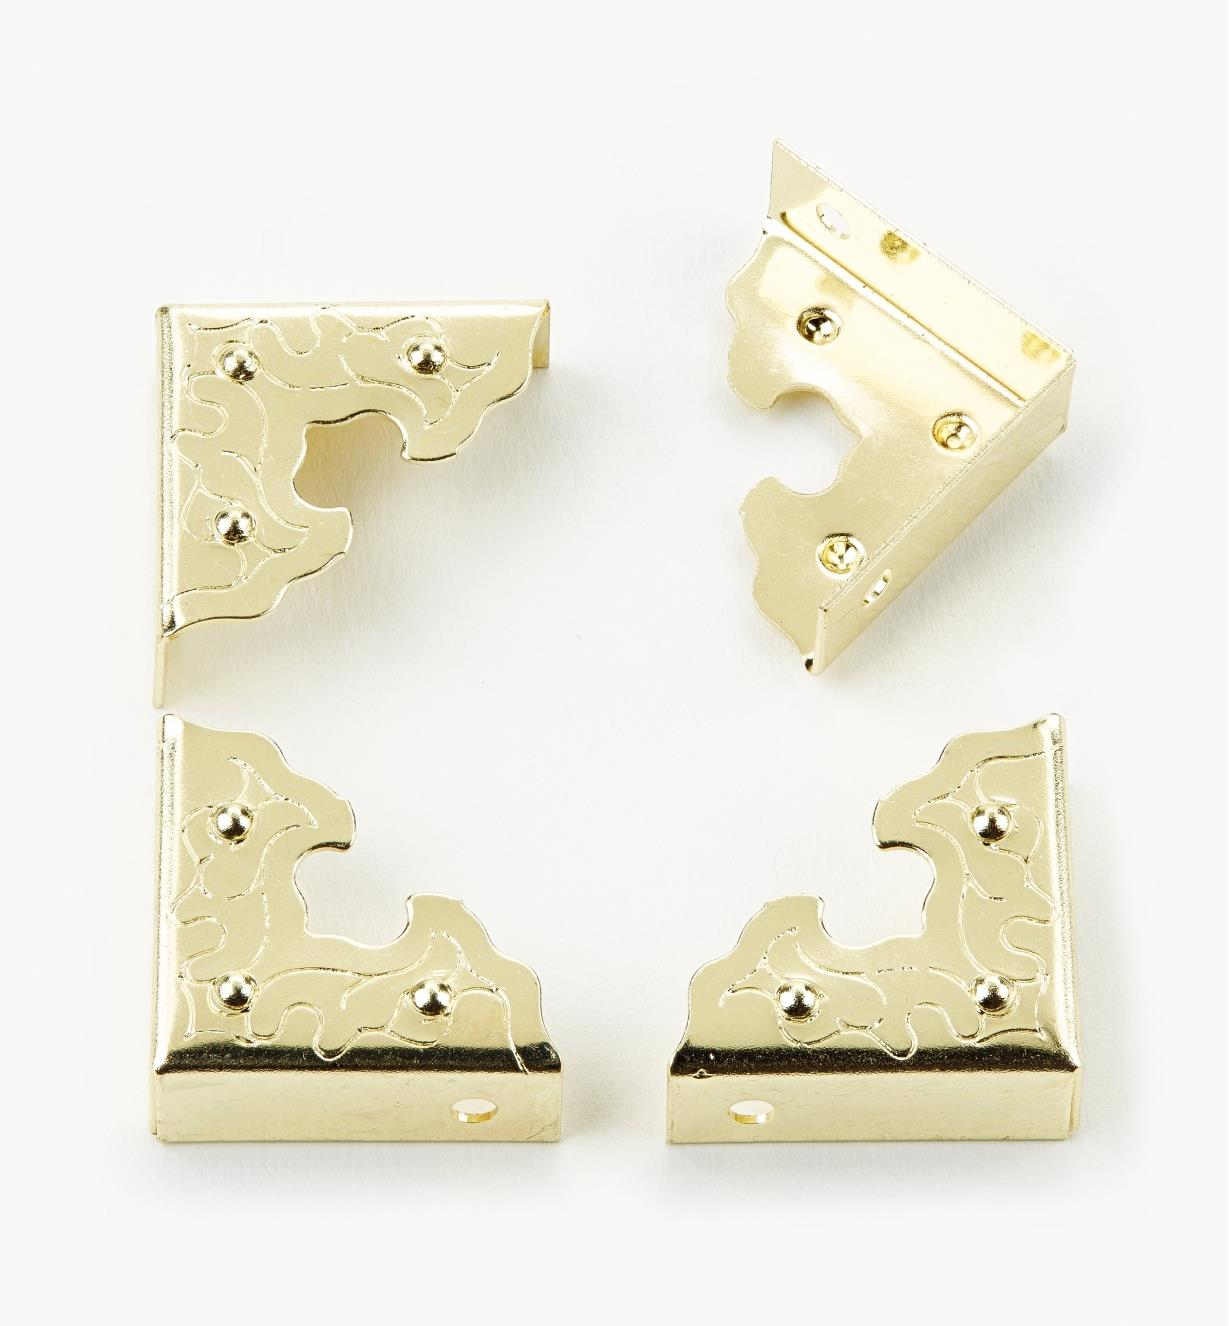 00D4470 - Brass-Plated Filigree Corners (4)